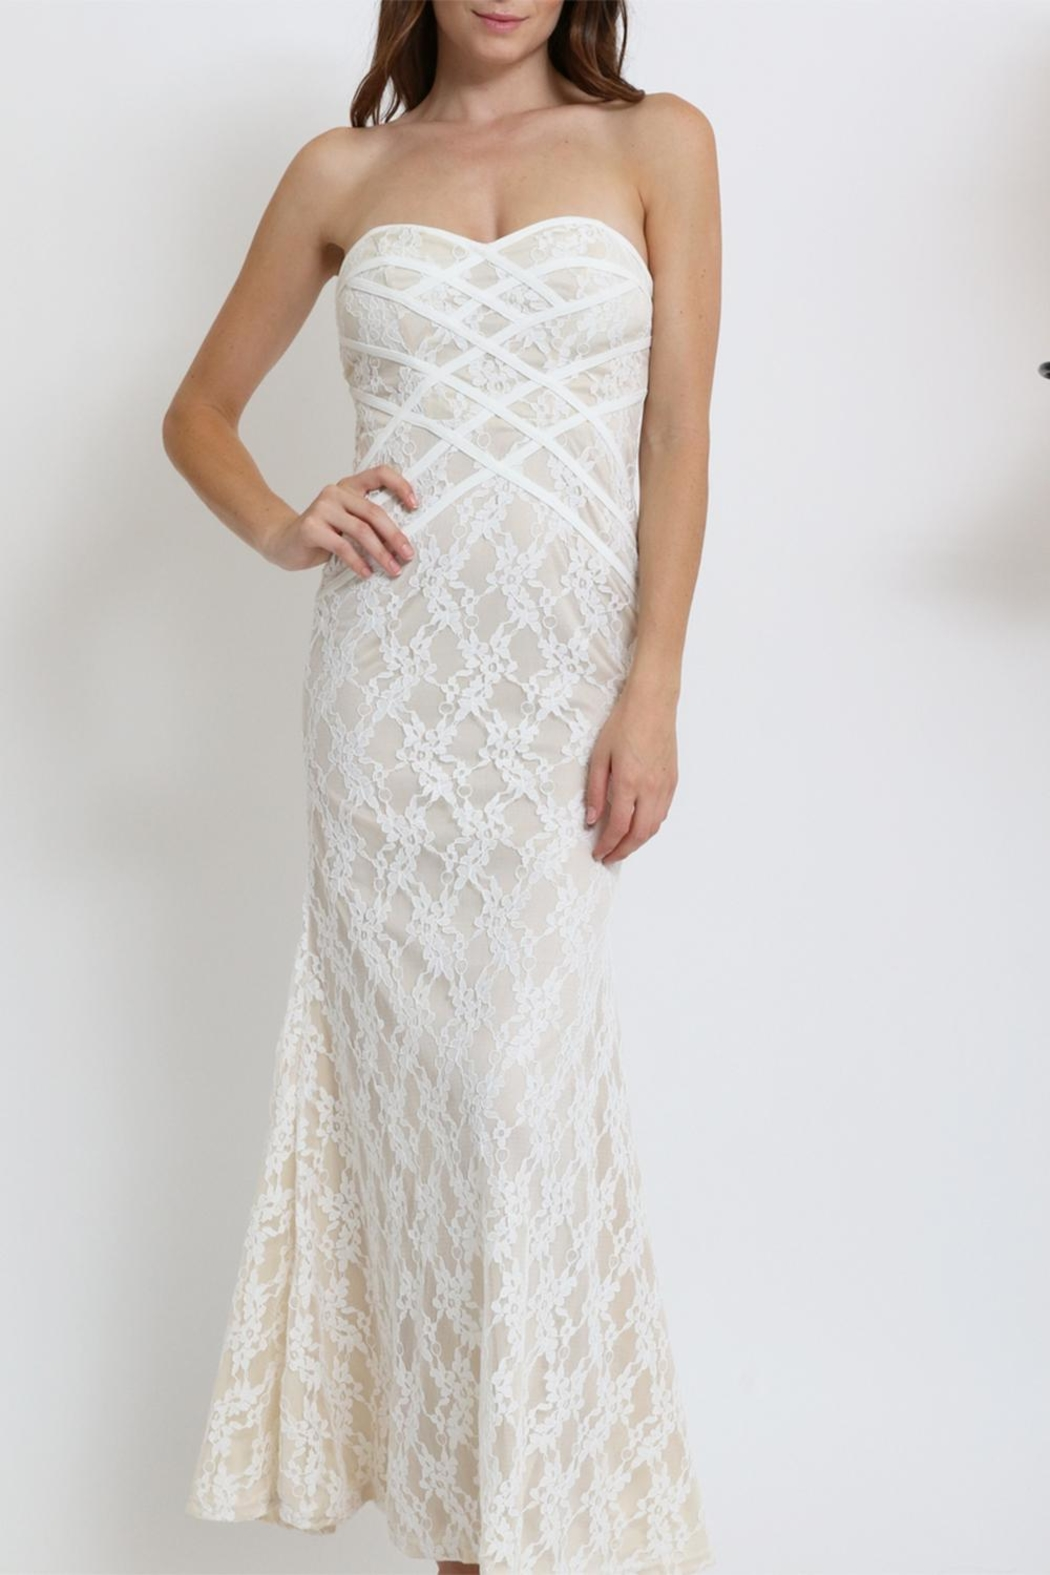 Xtaren Lace Strapless Dress - Main Image